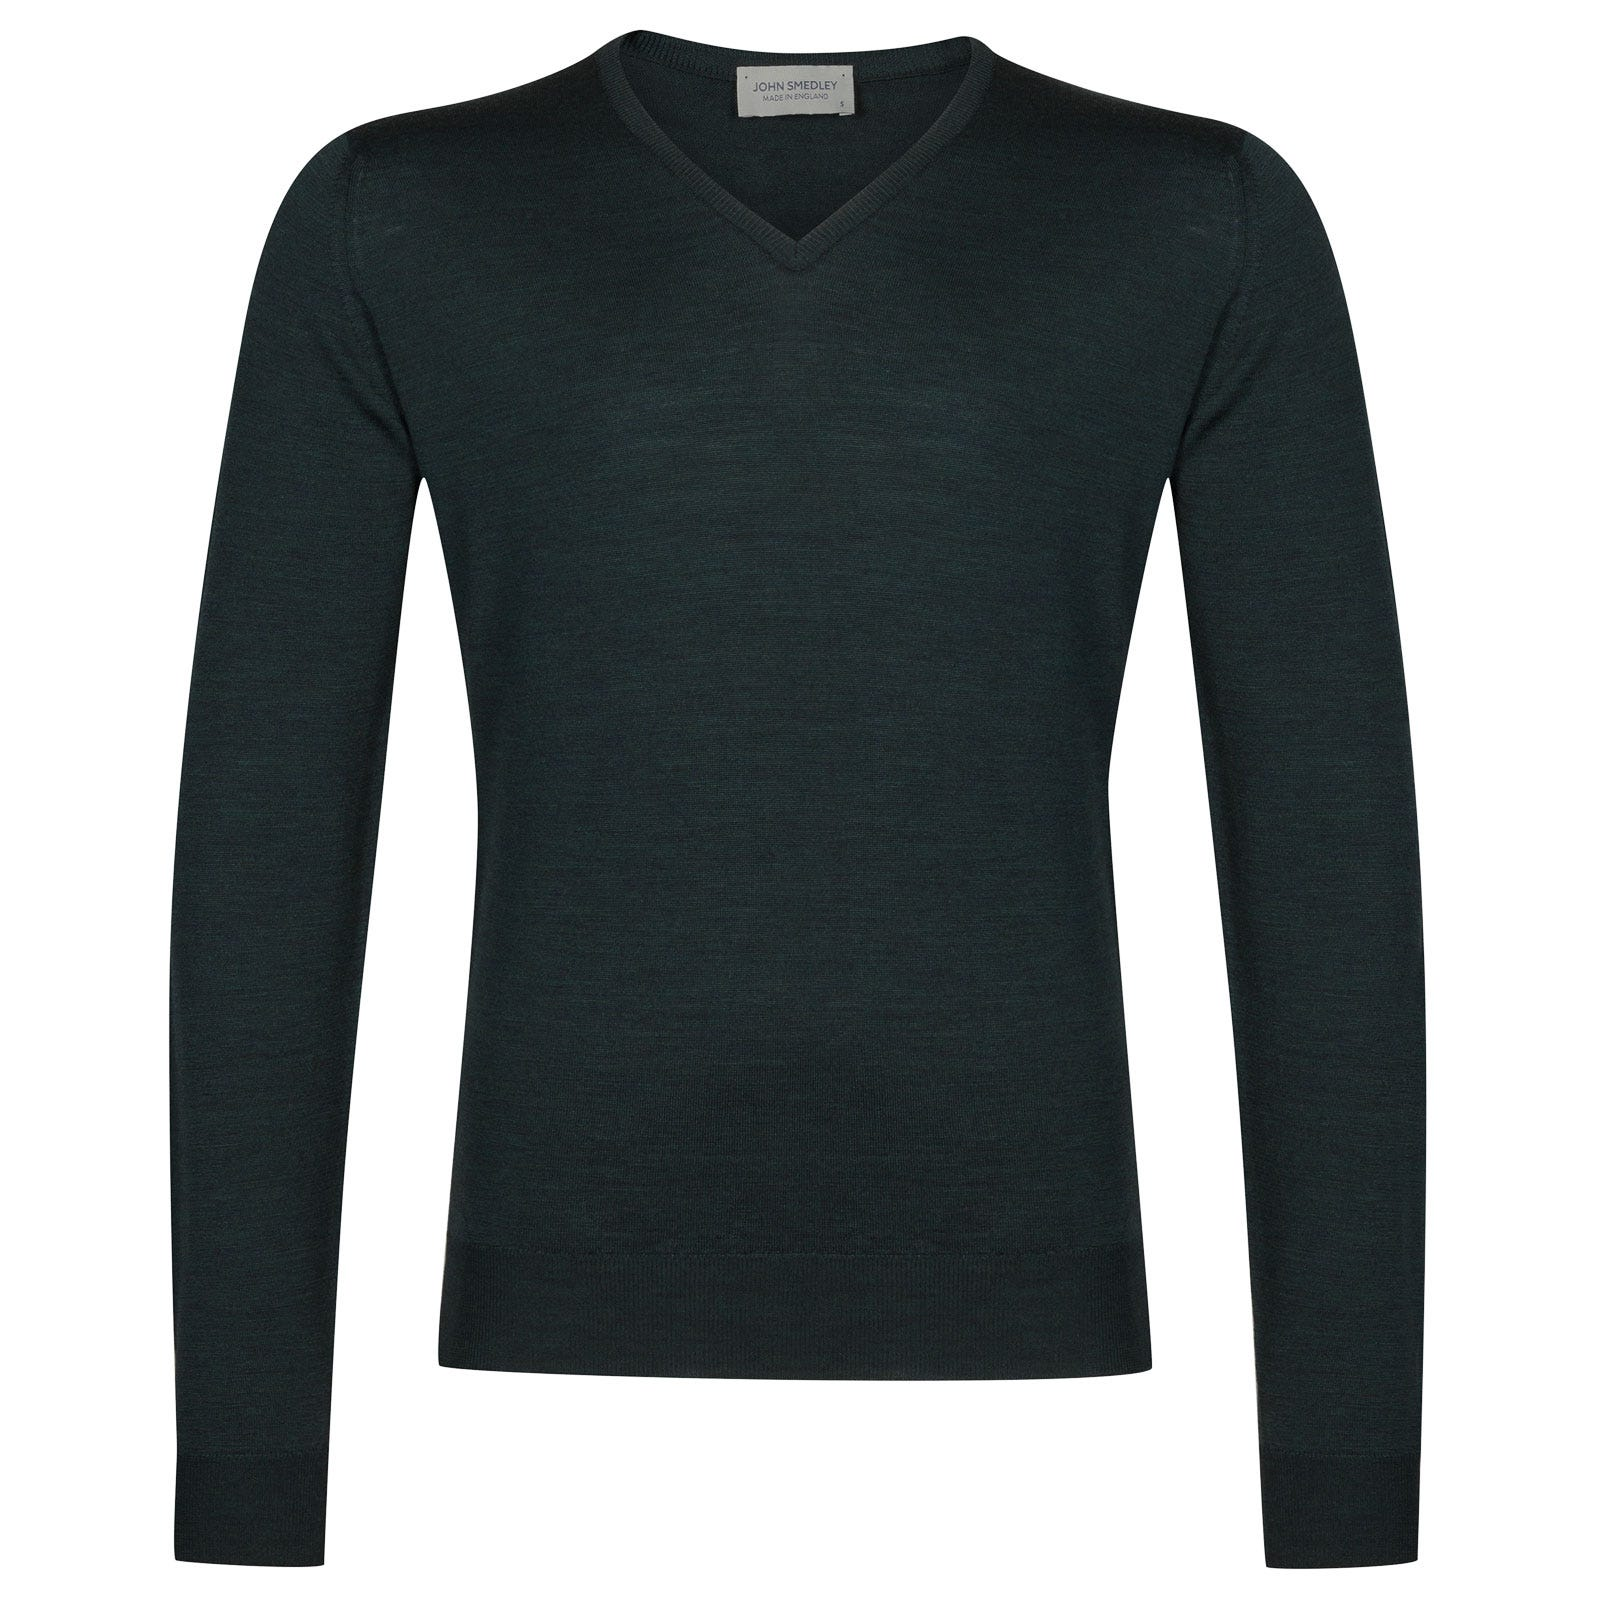 John Smedley Blenheim Merino Wool Pullover in Racing Green-S